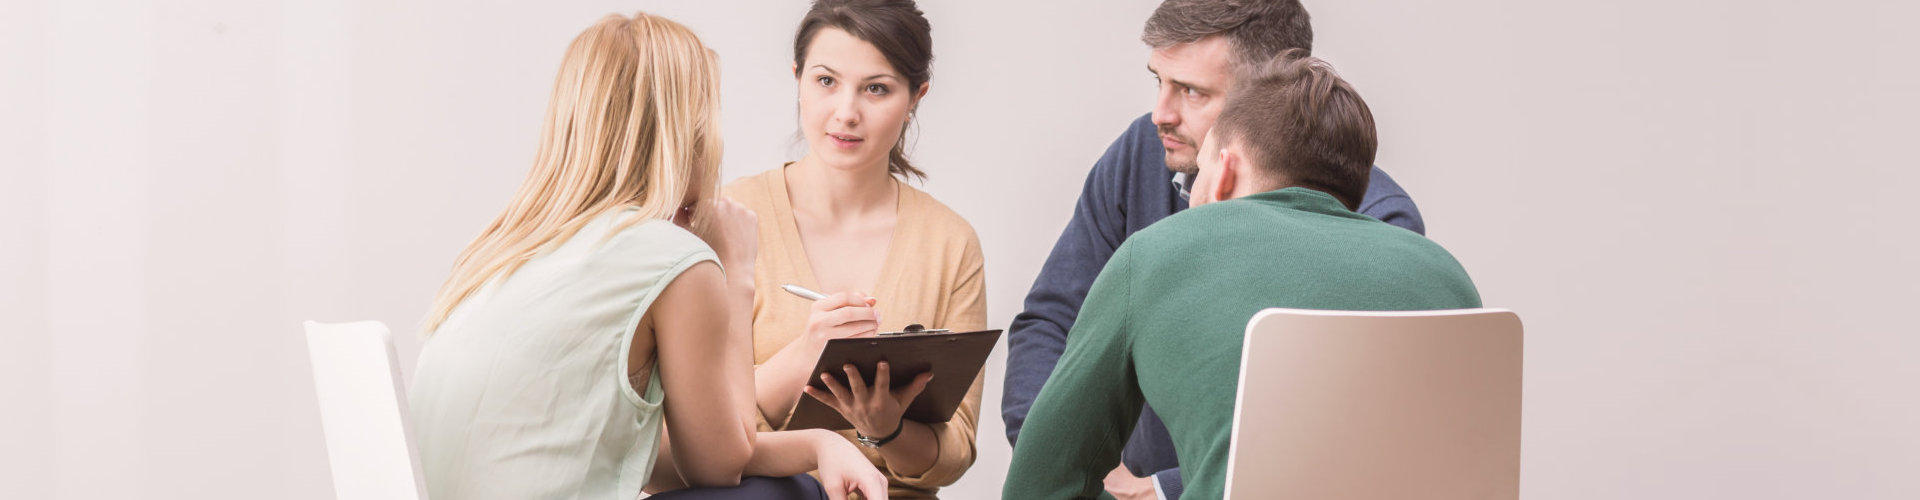 counselor counseling patients